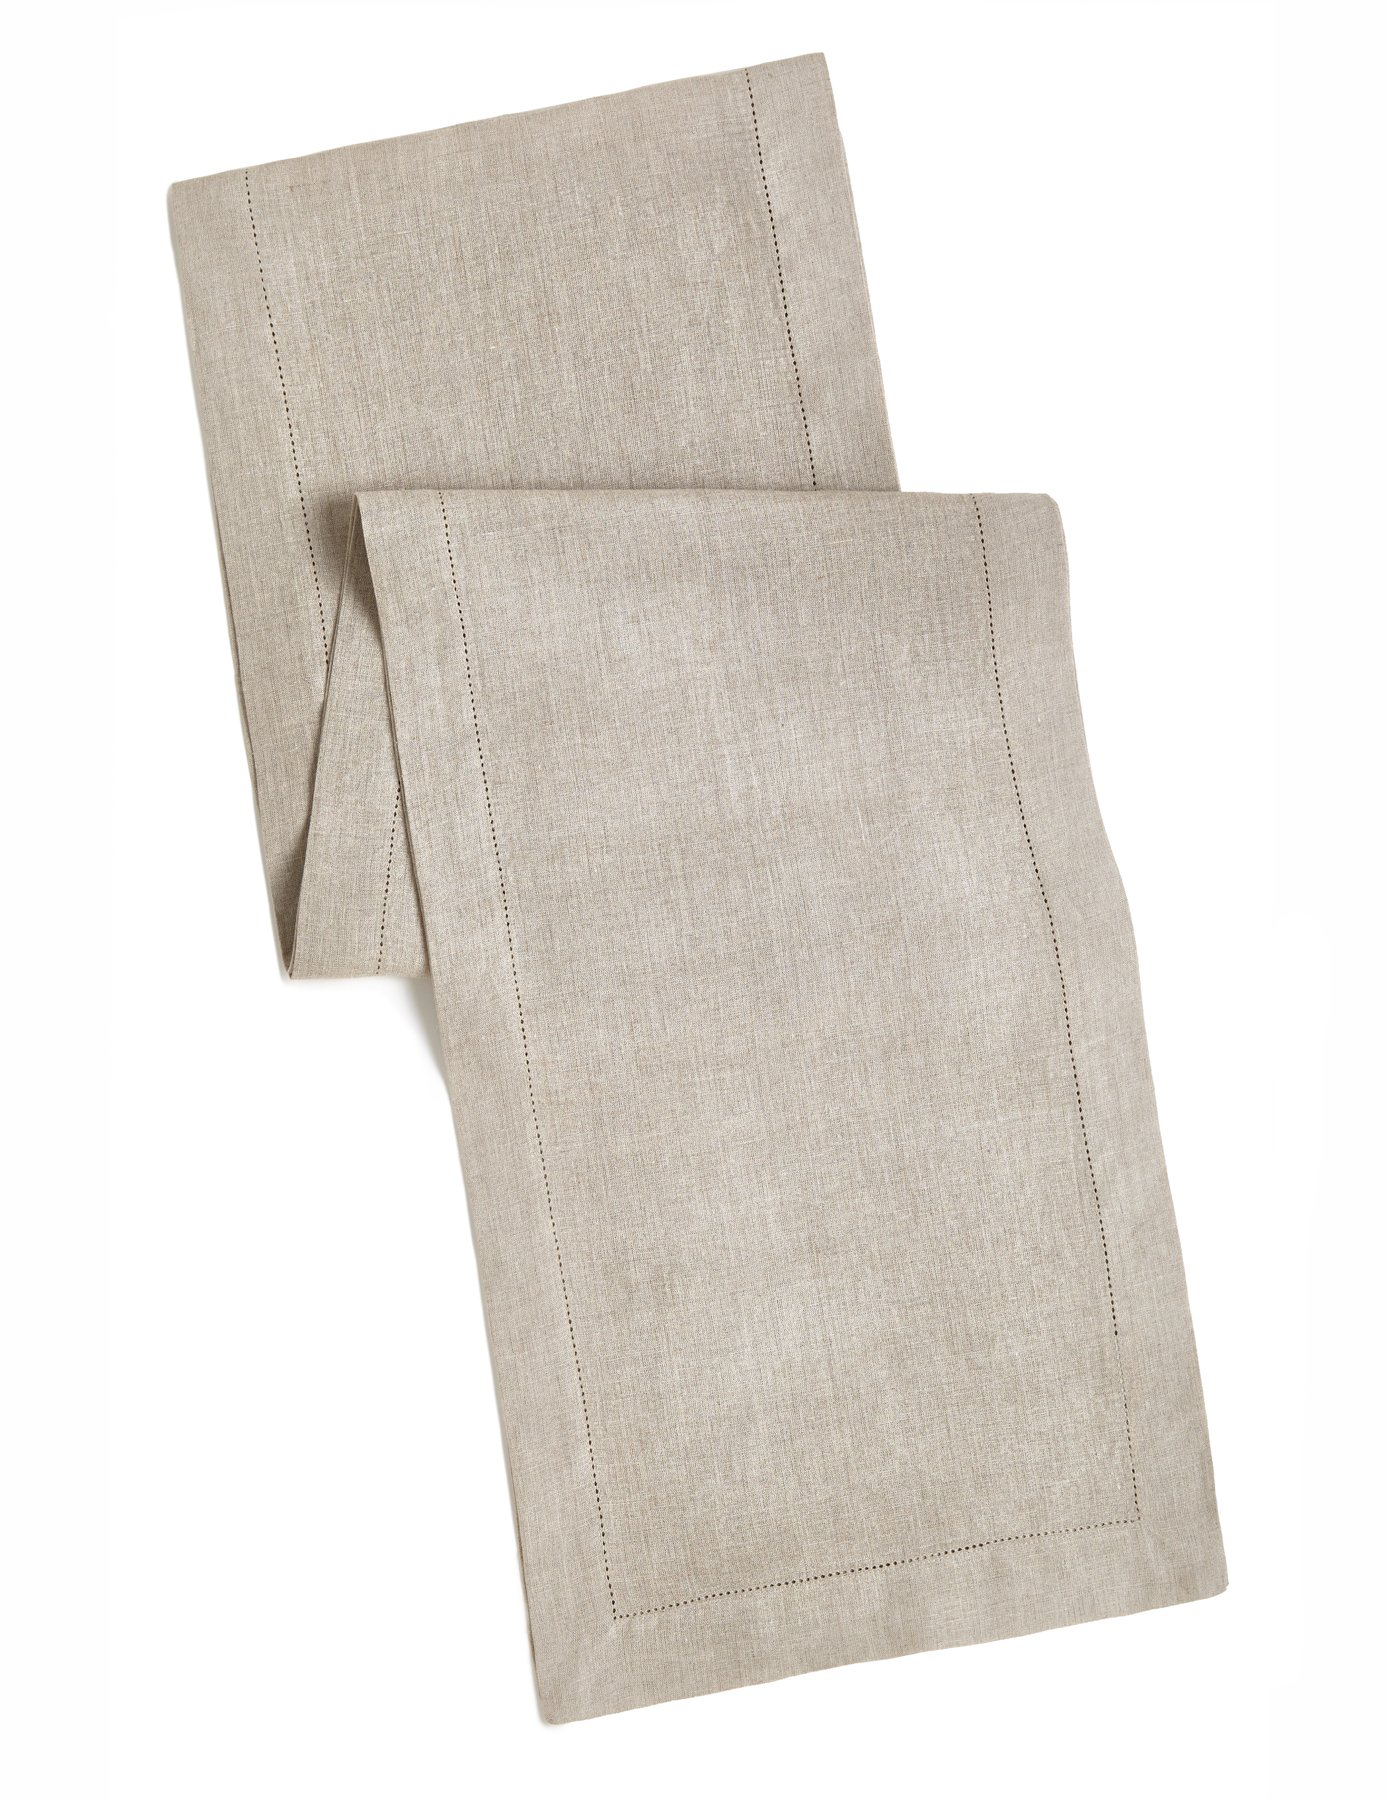 100% Linen Hemstitch Table Runner - Size 16x72 Natural - Hand Crafted and Hand Stitched Table Runner with Hemstitch detailing. The pure Linen fabric works well in both casual and formal settings - 100% Linen Table Runner. Color - Natural. Each table runner measures 16x72 inches. Pure 100% Linen fabric works in both casual and formal settings. - table-runners, kitchen-dining-room-table-linens, kitchen-dining-room - 81yJM%2BLlkxL -